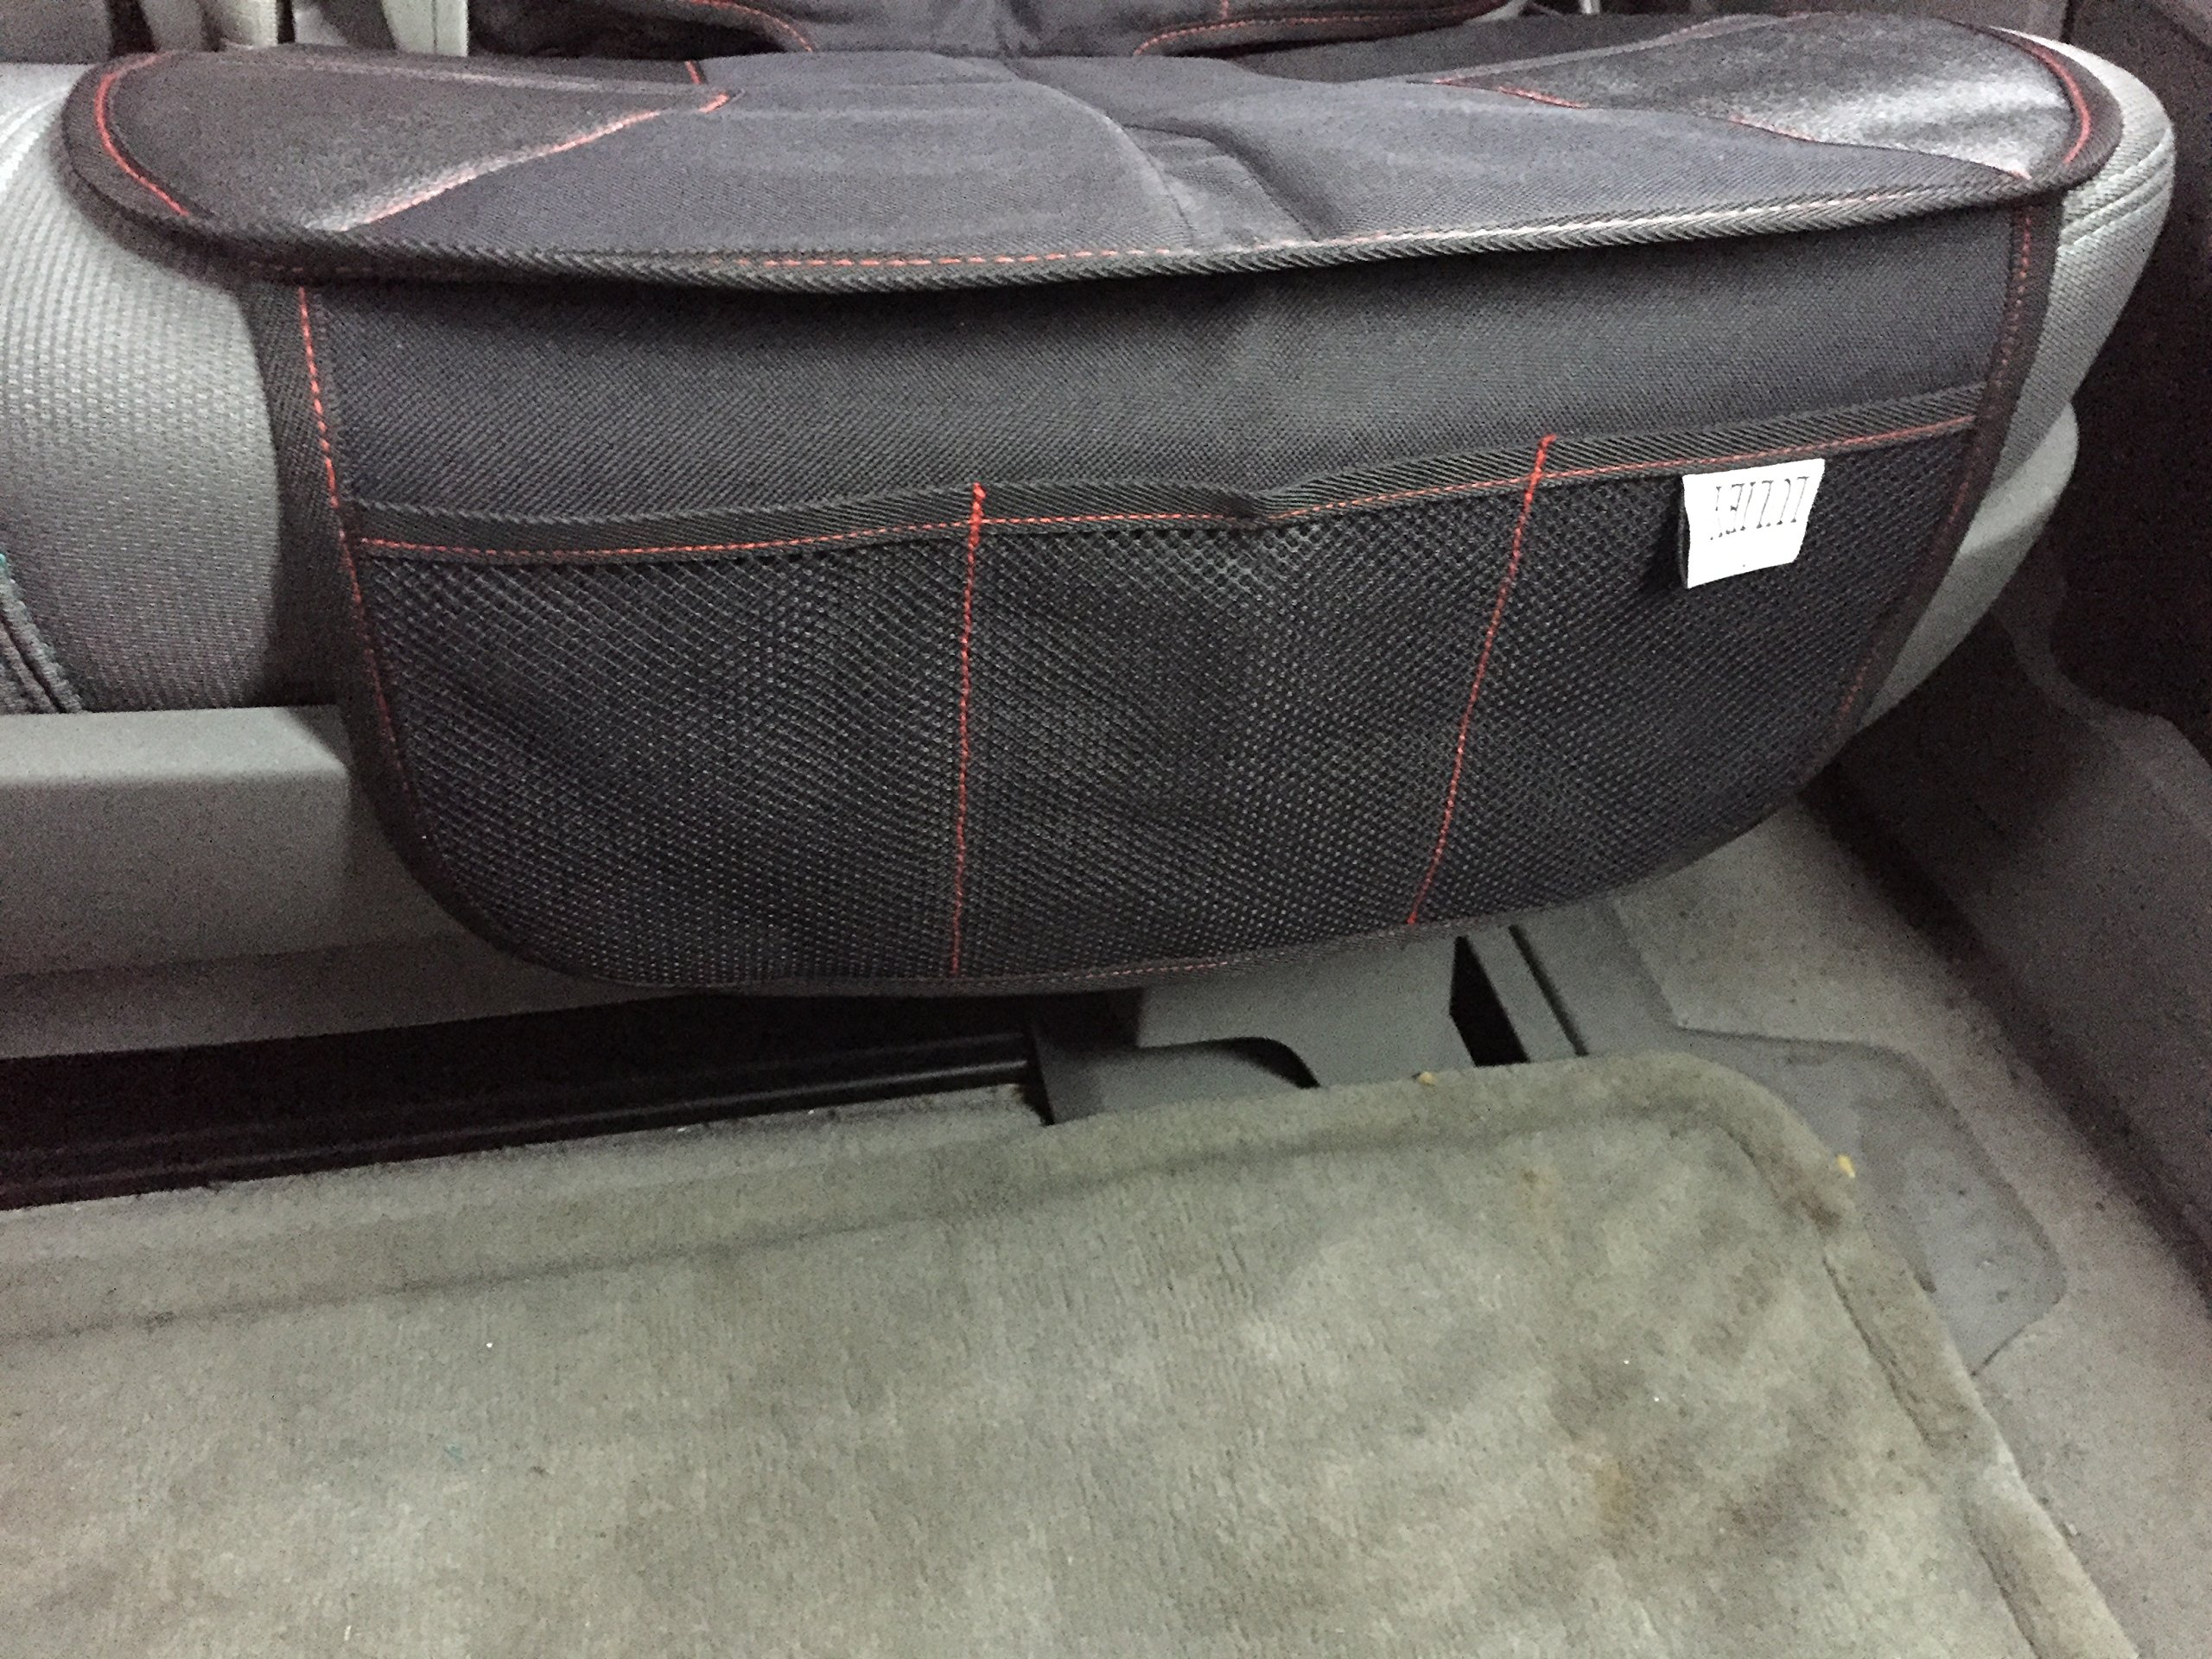 PREMIUM OXFORD Luxury Car Seat Protector - Durable 600D OXFORD Material, Black Leather by Luliey (Image #5)